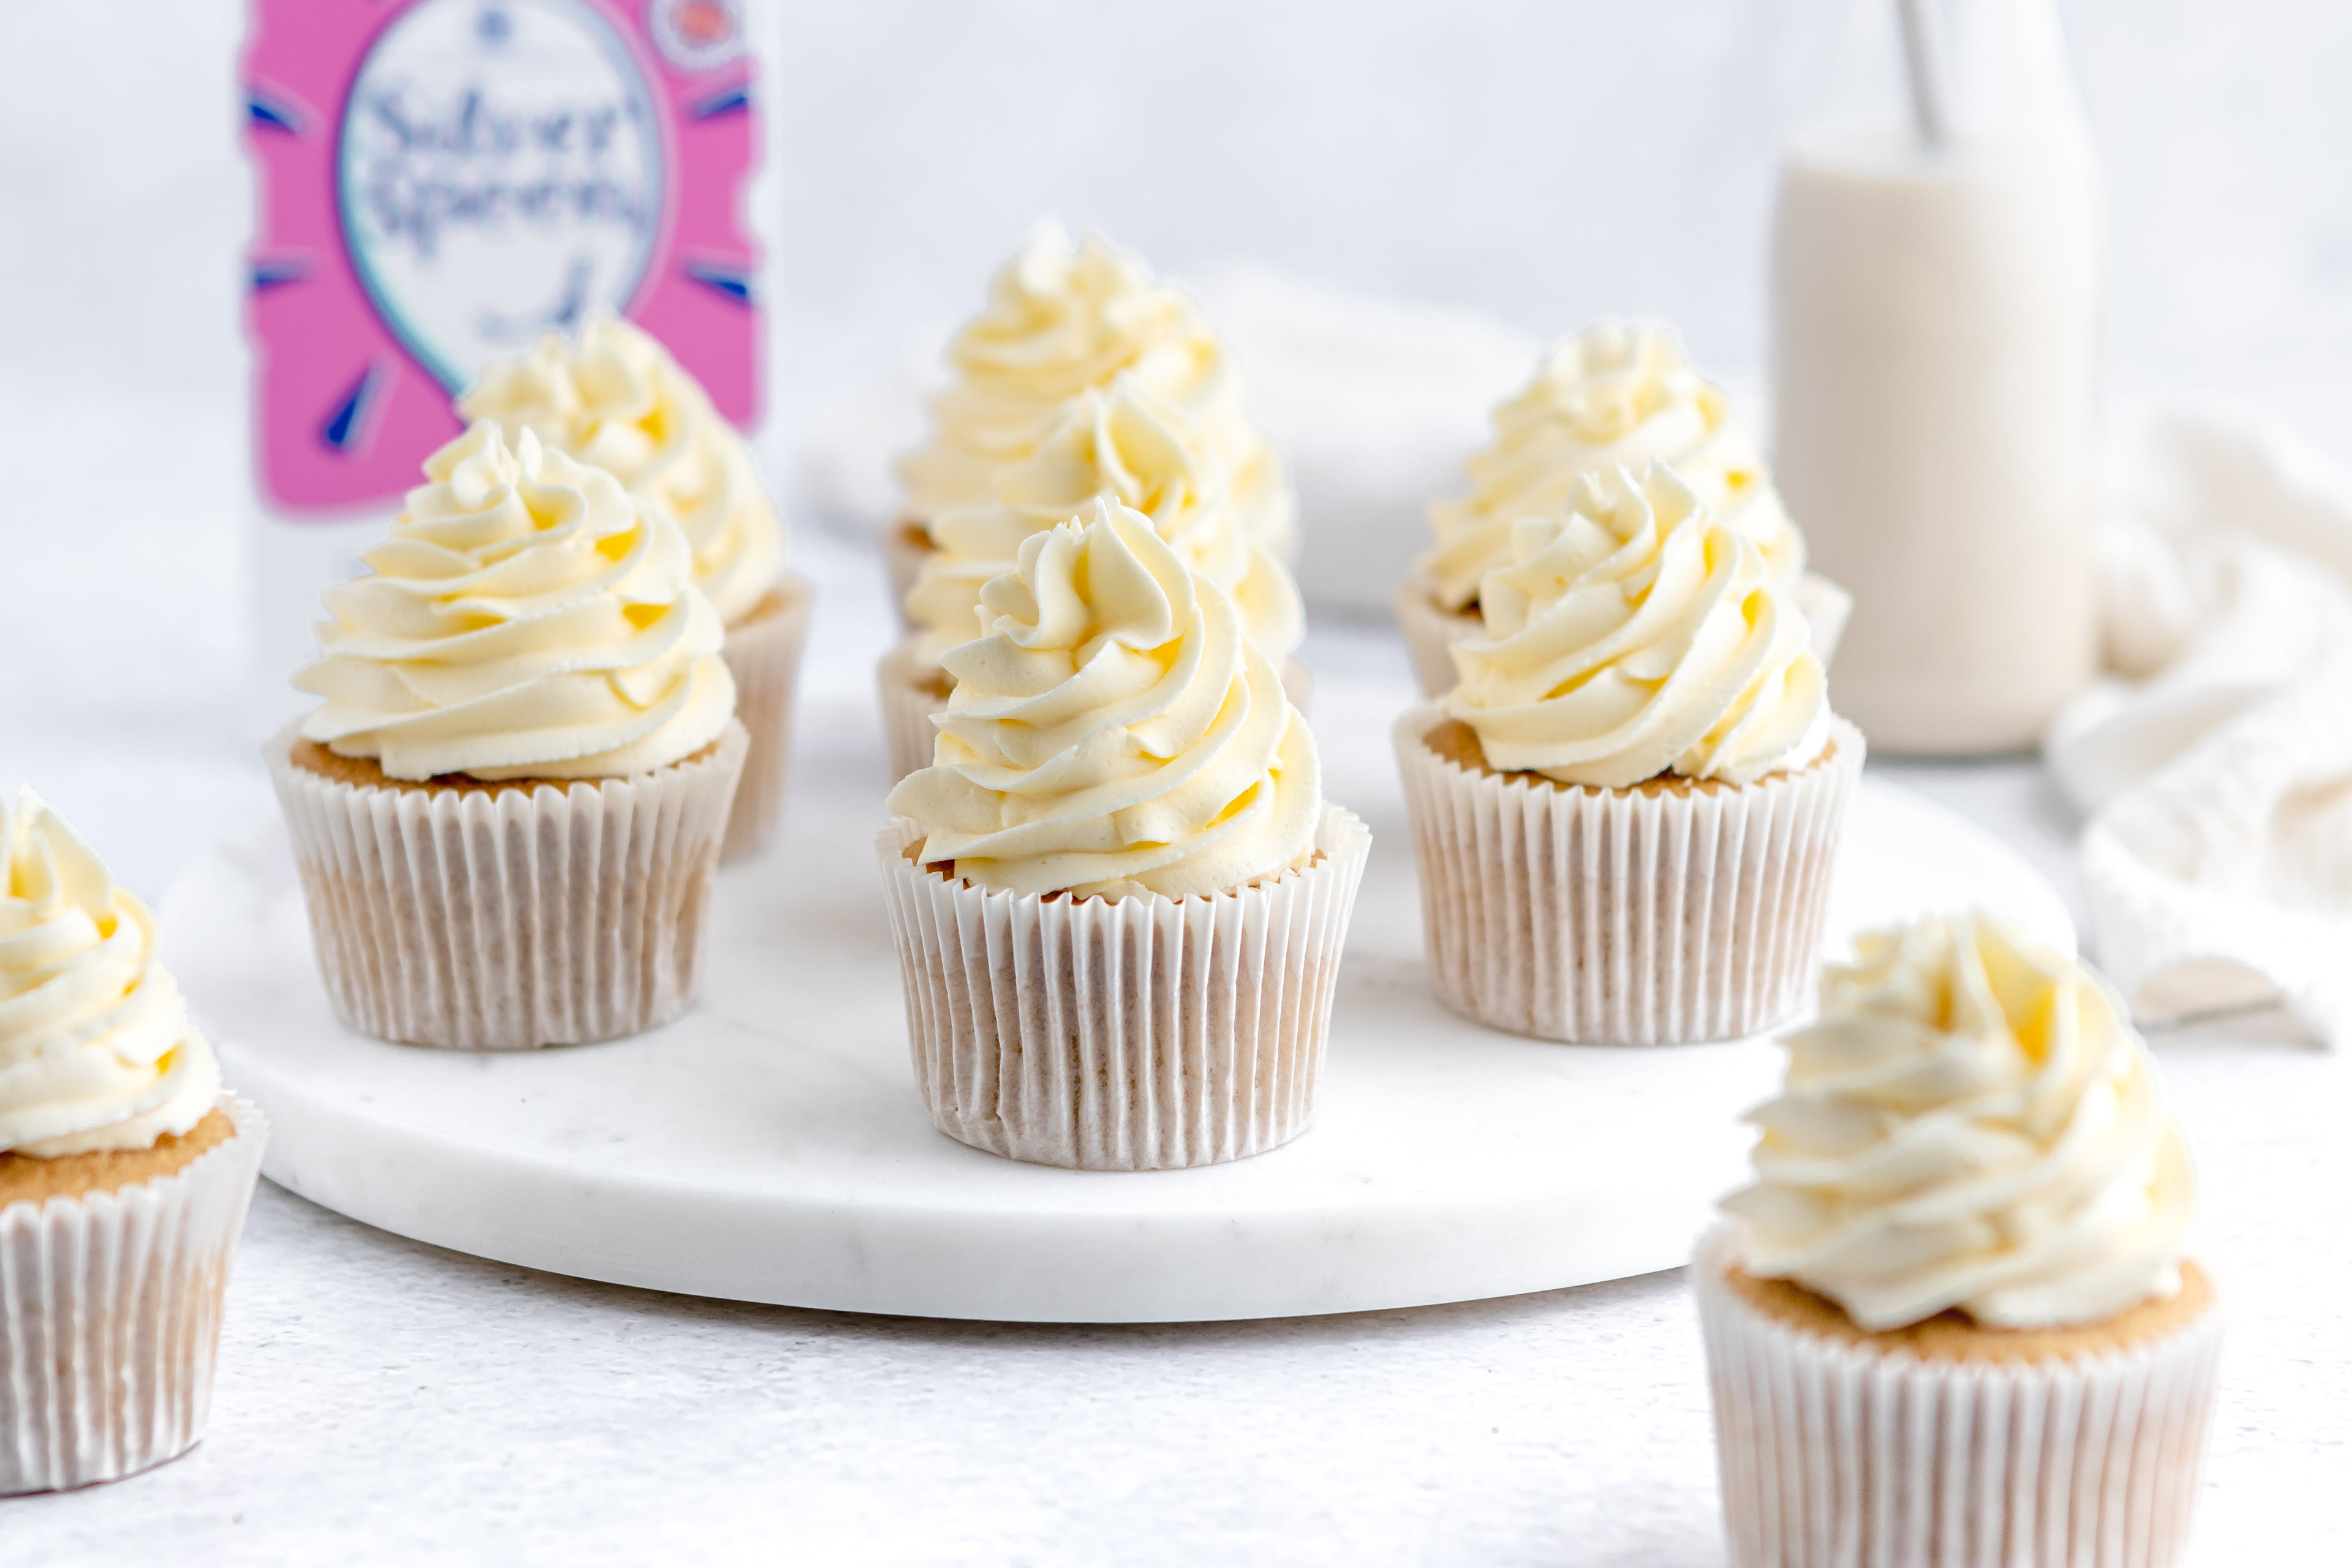 Gluten Free Cupcakes with buttercream on a serving board